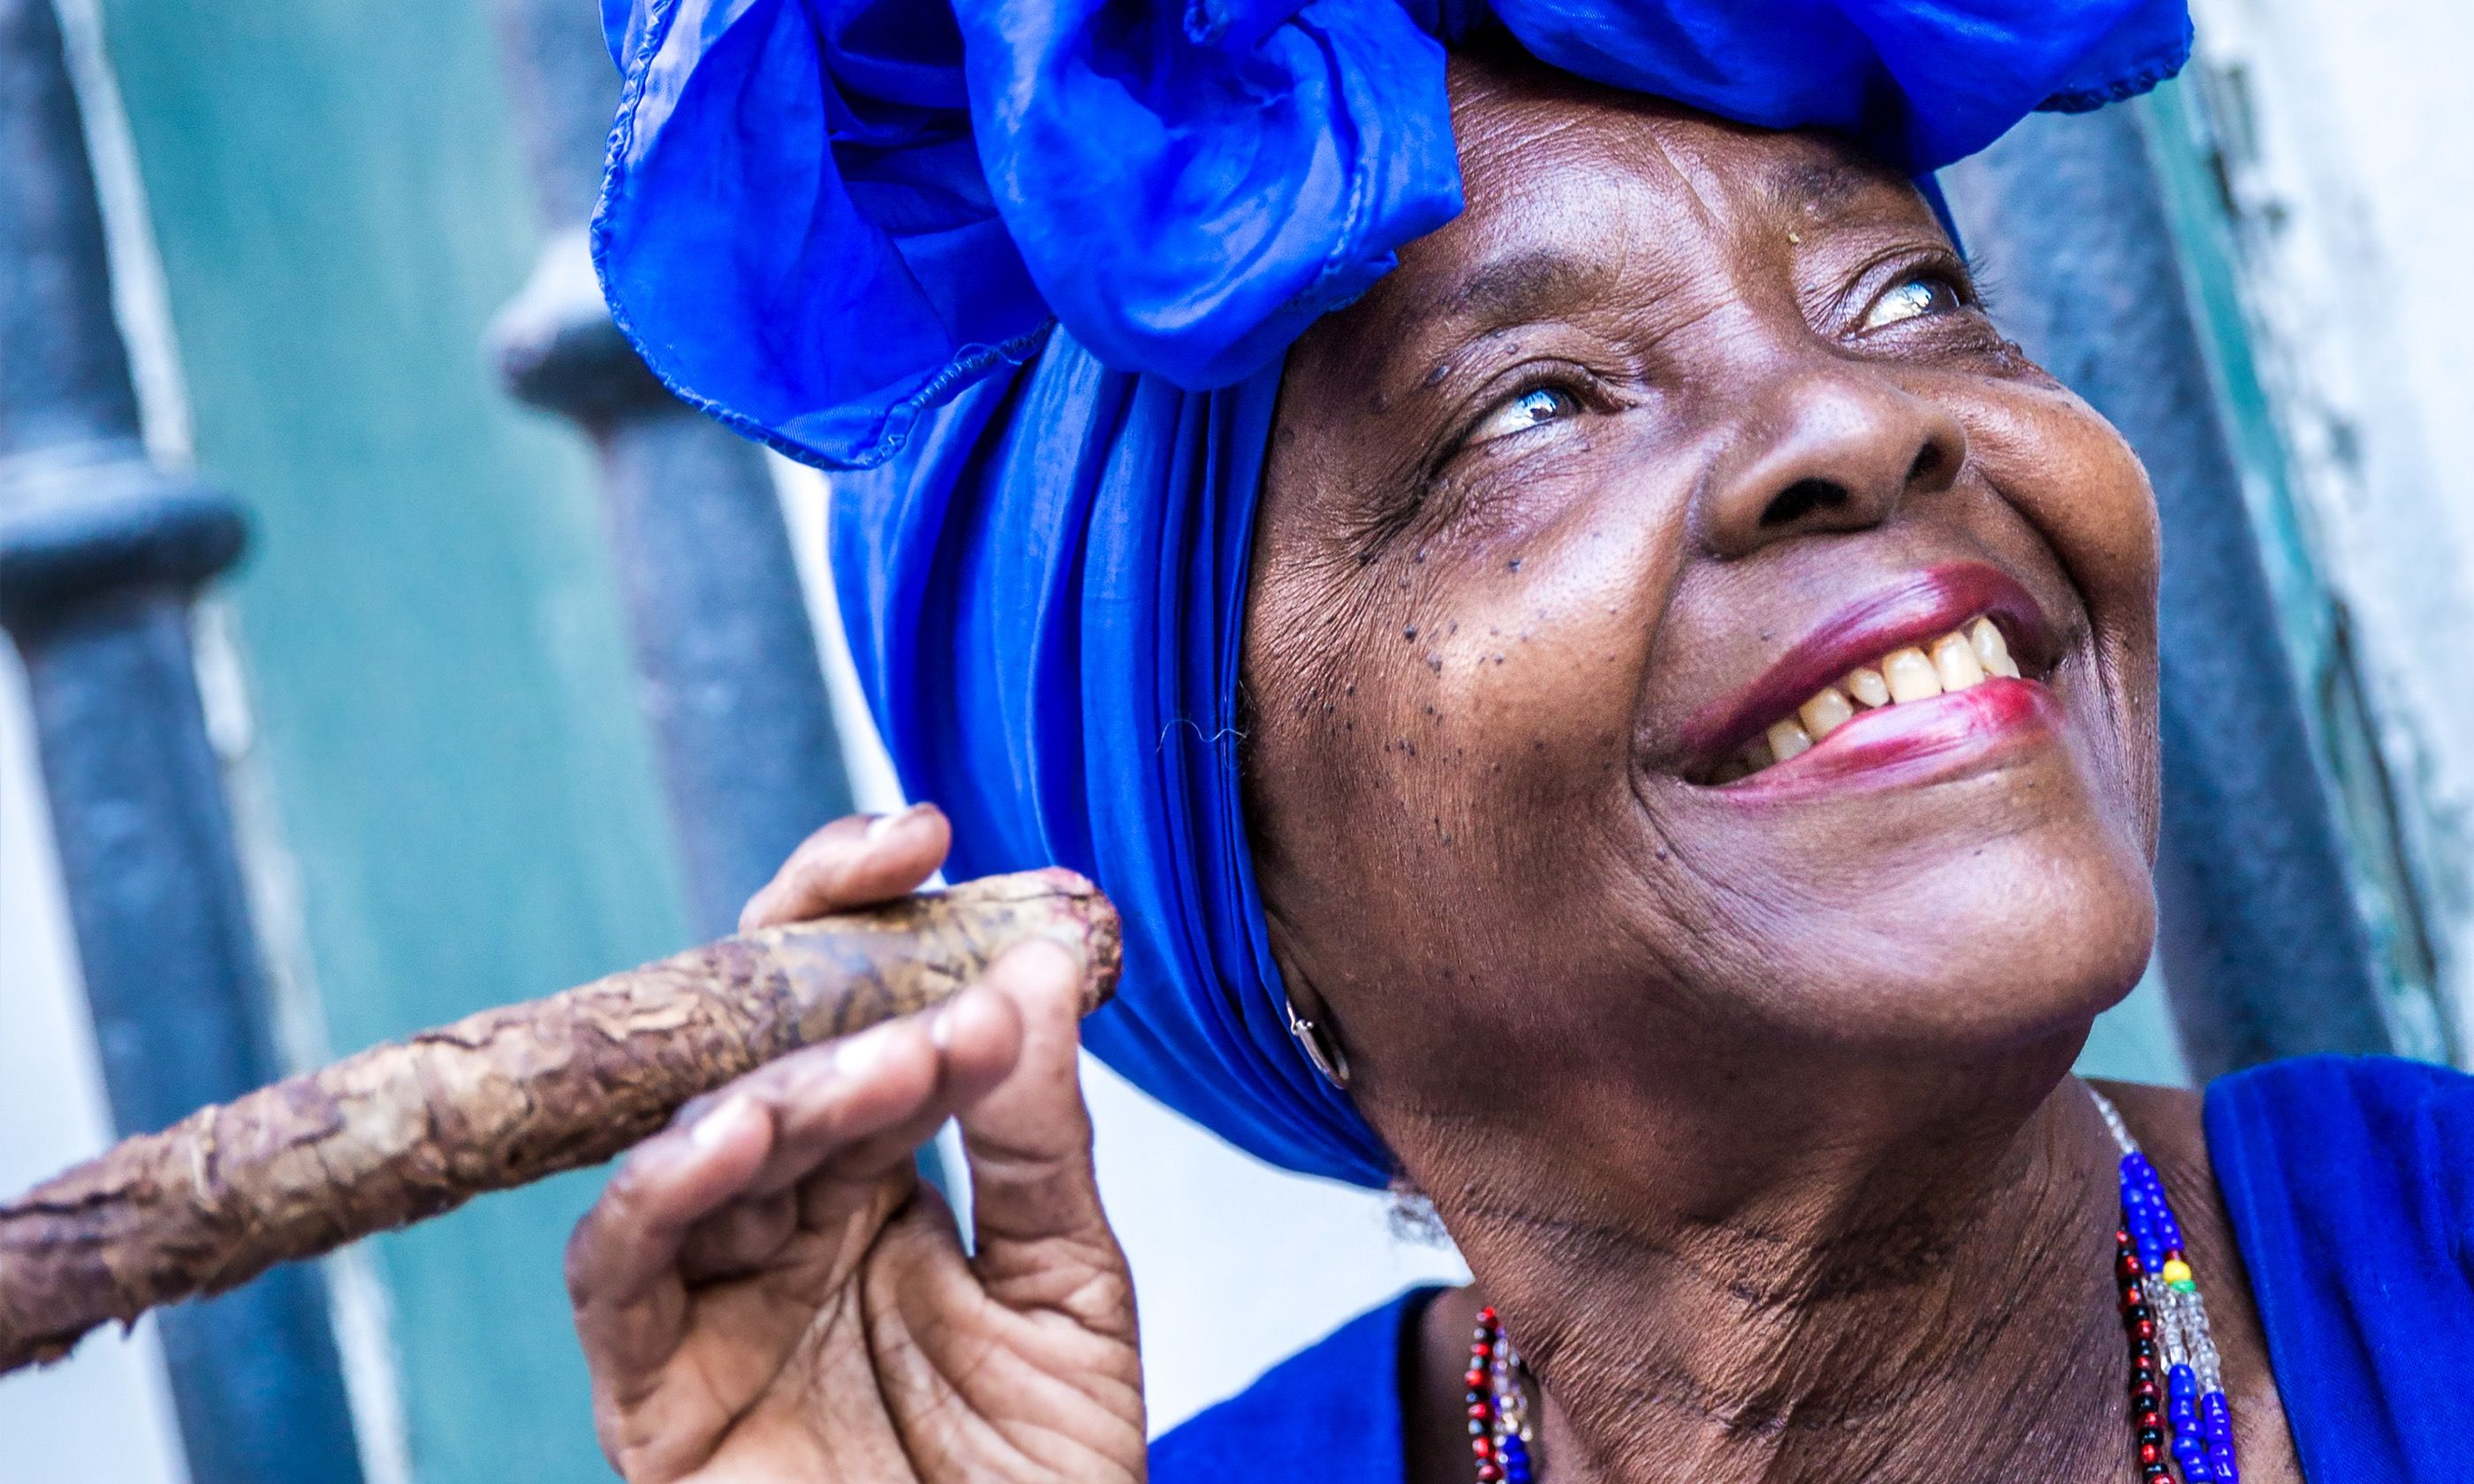 Local lady smoking a cigar in Havana (Shutterstock.com)